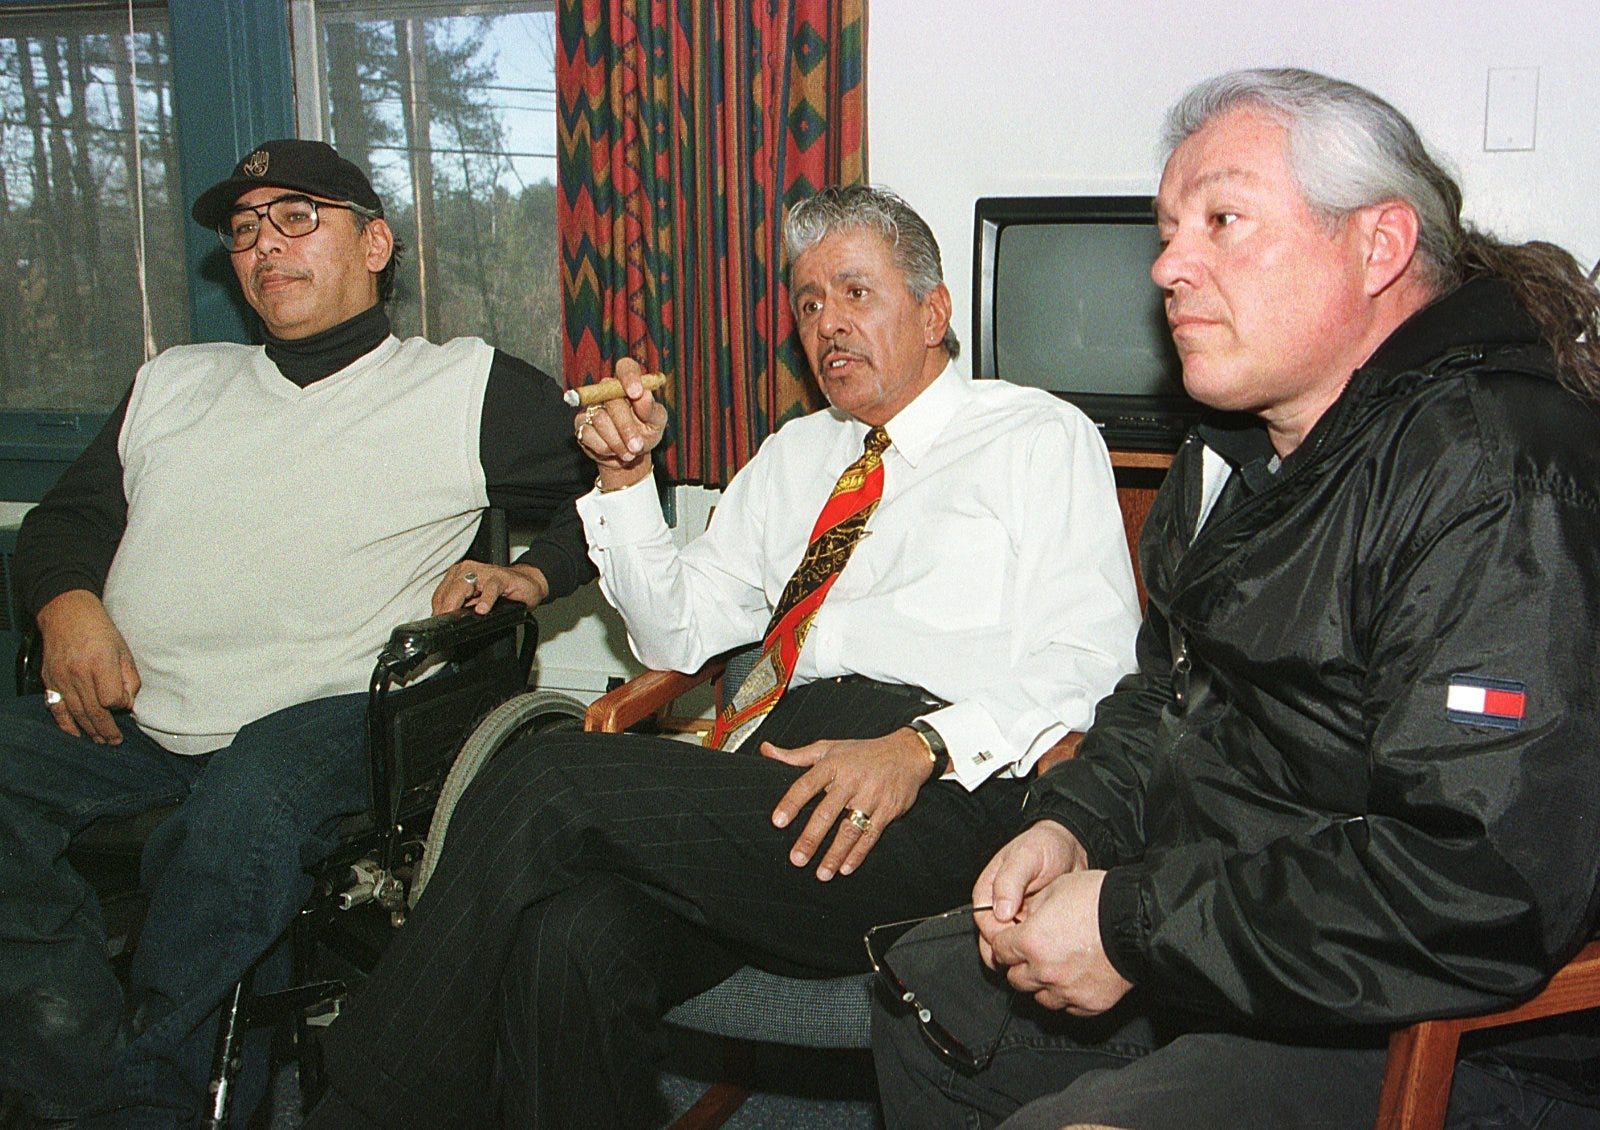 Members of the Menominee Warrior Society, from left, Royal Warrington,  Apesanahkwat and Ken Fish, recount their takeover of the Alexian Brothers Novitiate on Jan. 1, 1975 during a 1999 interview.